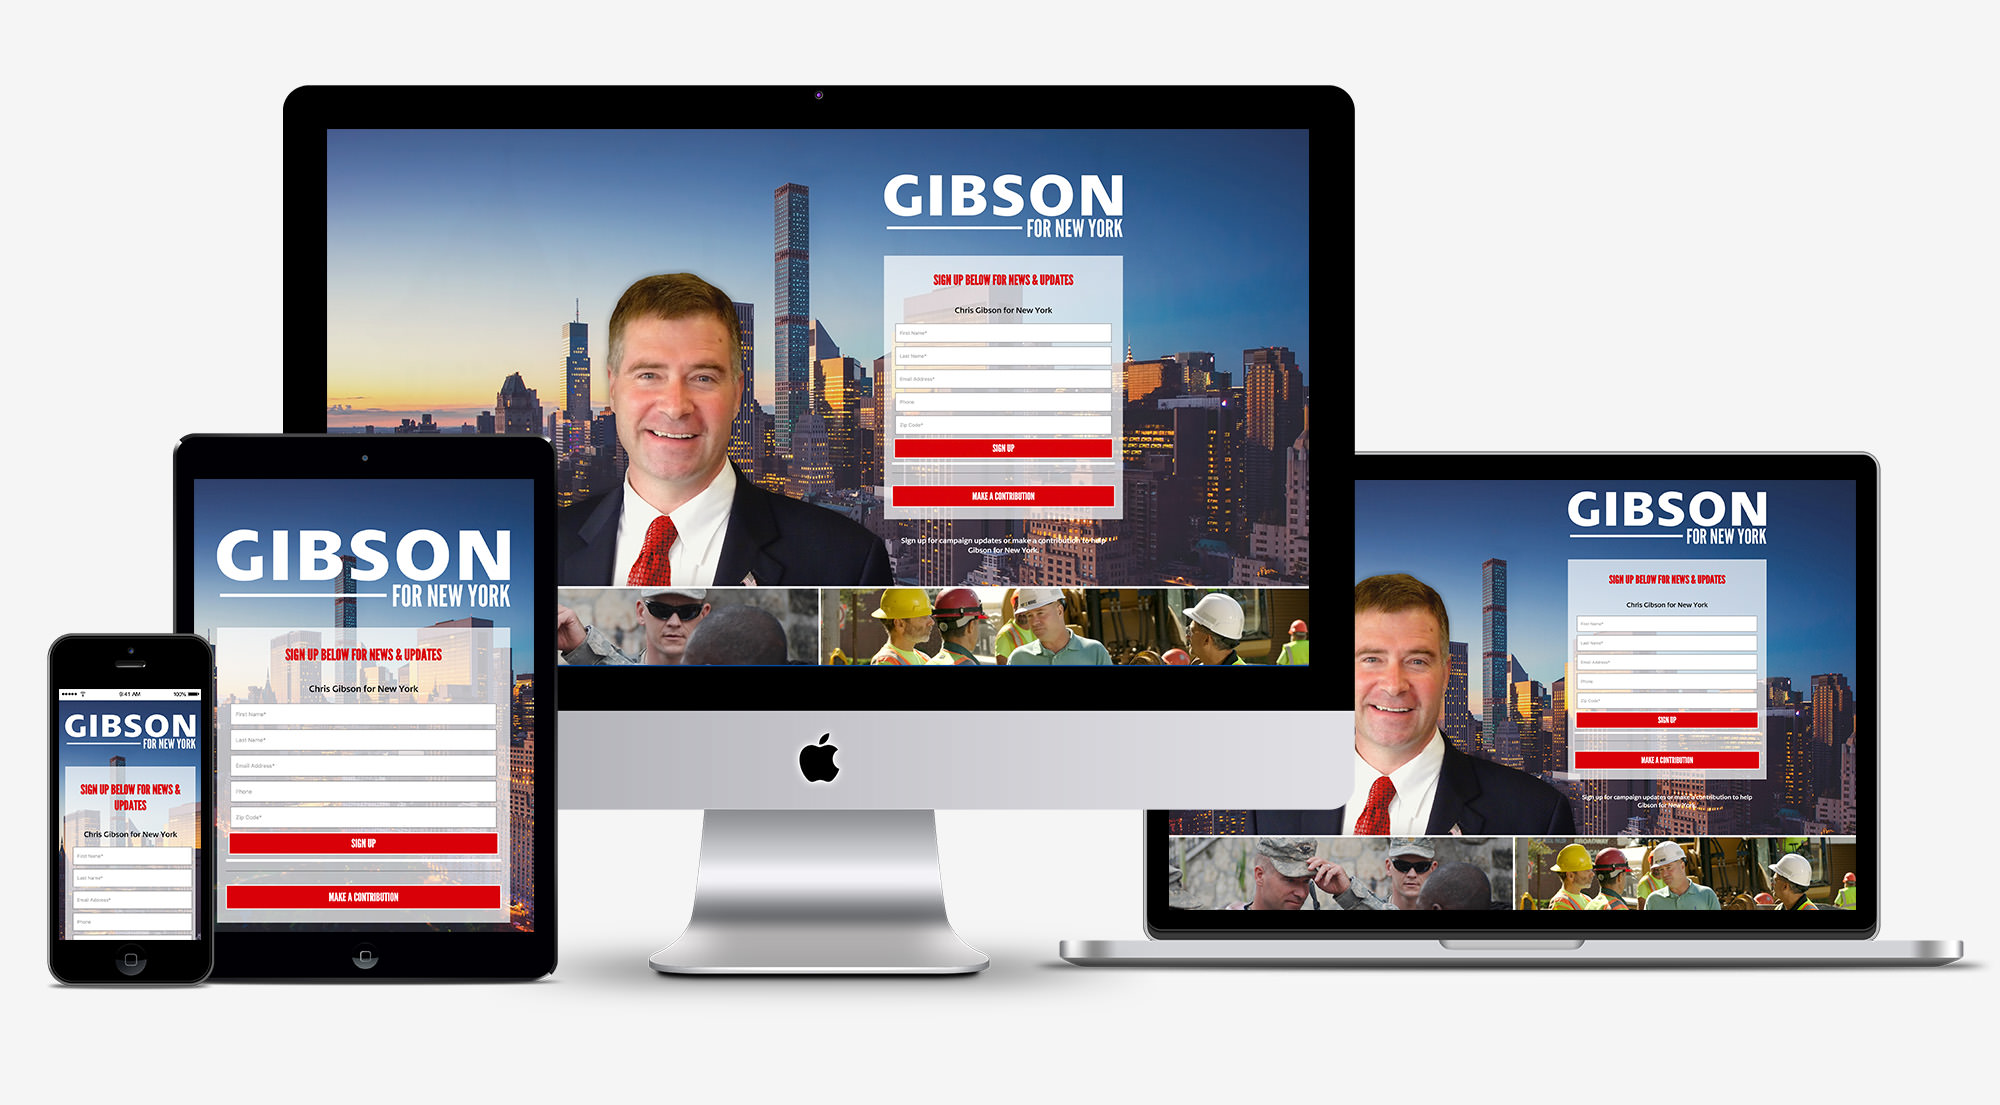 Gibson for New York